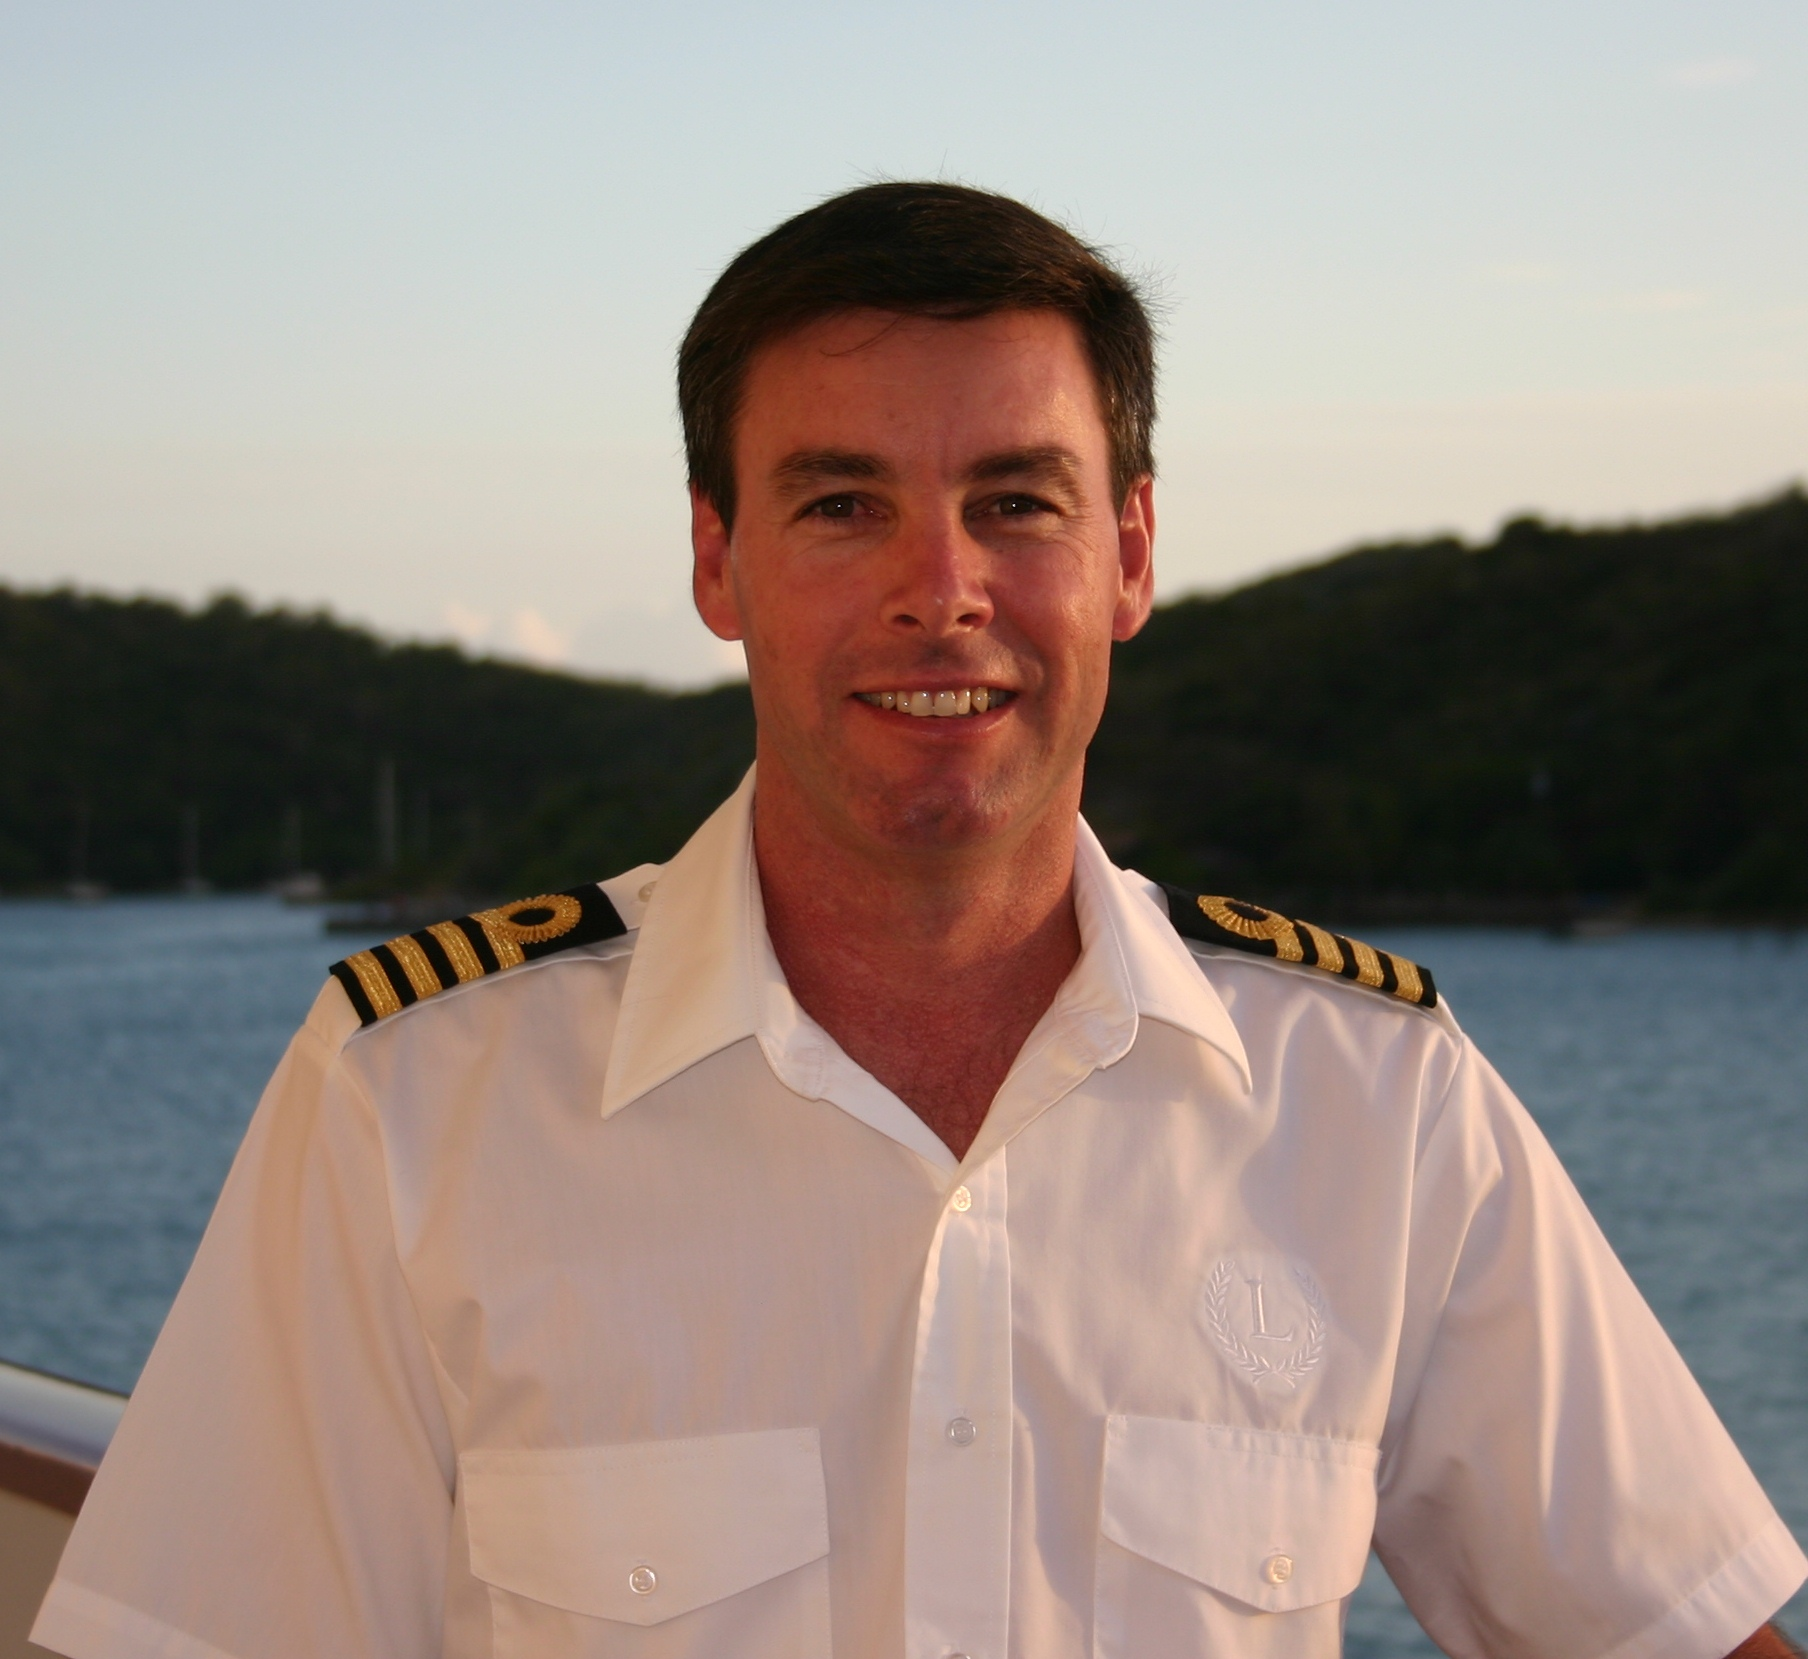 yacht captain smiling on boat on the sea